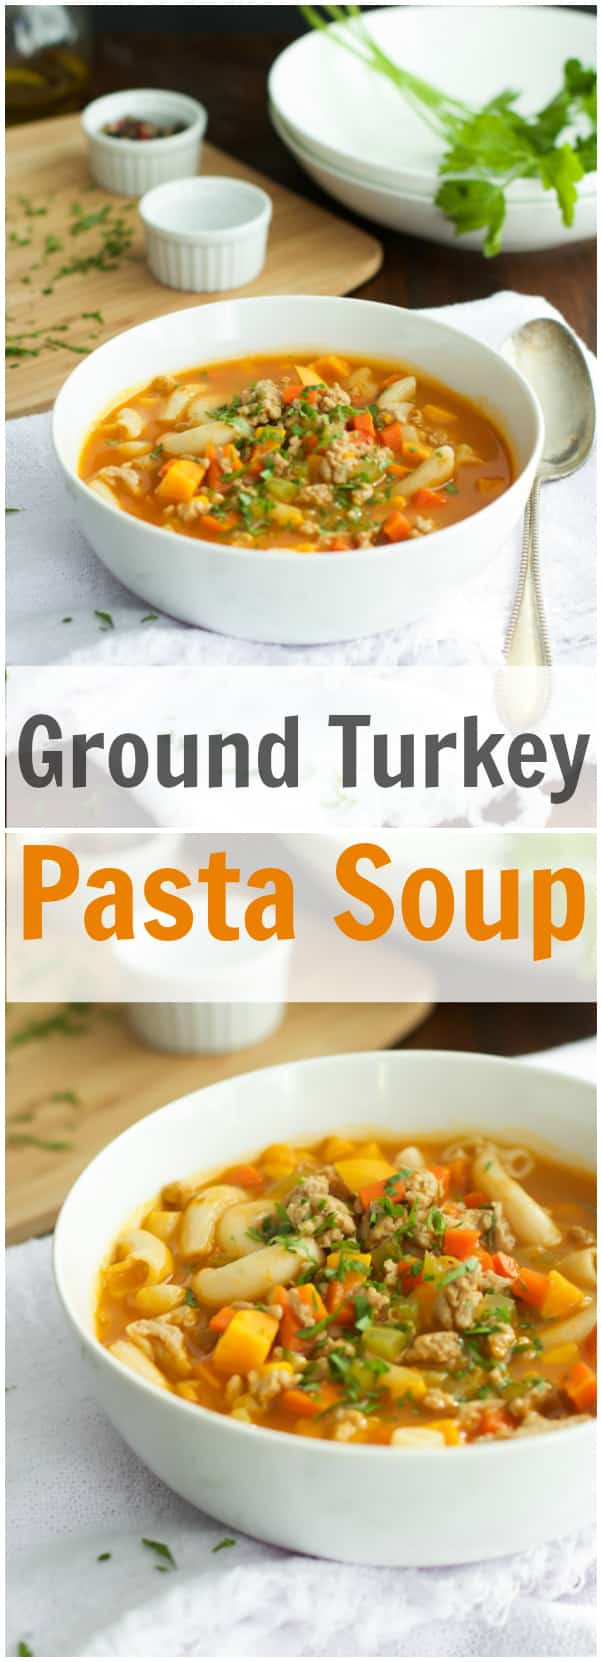 Ground Turkey Pasta Soup20